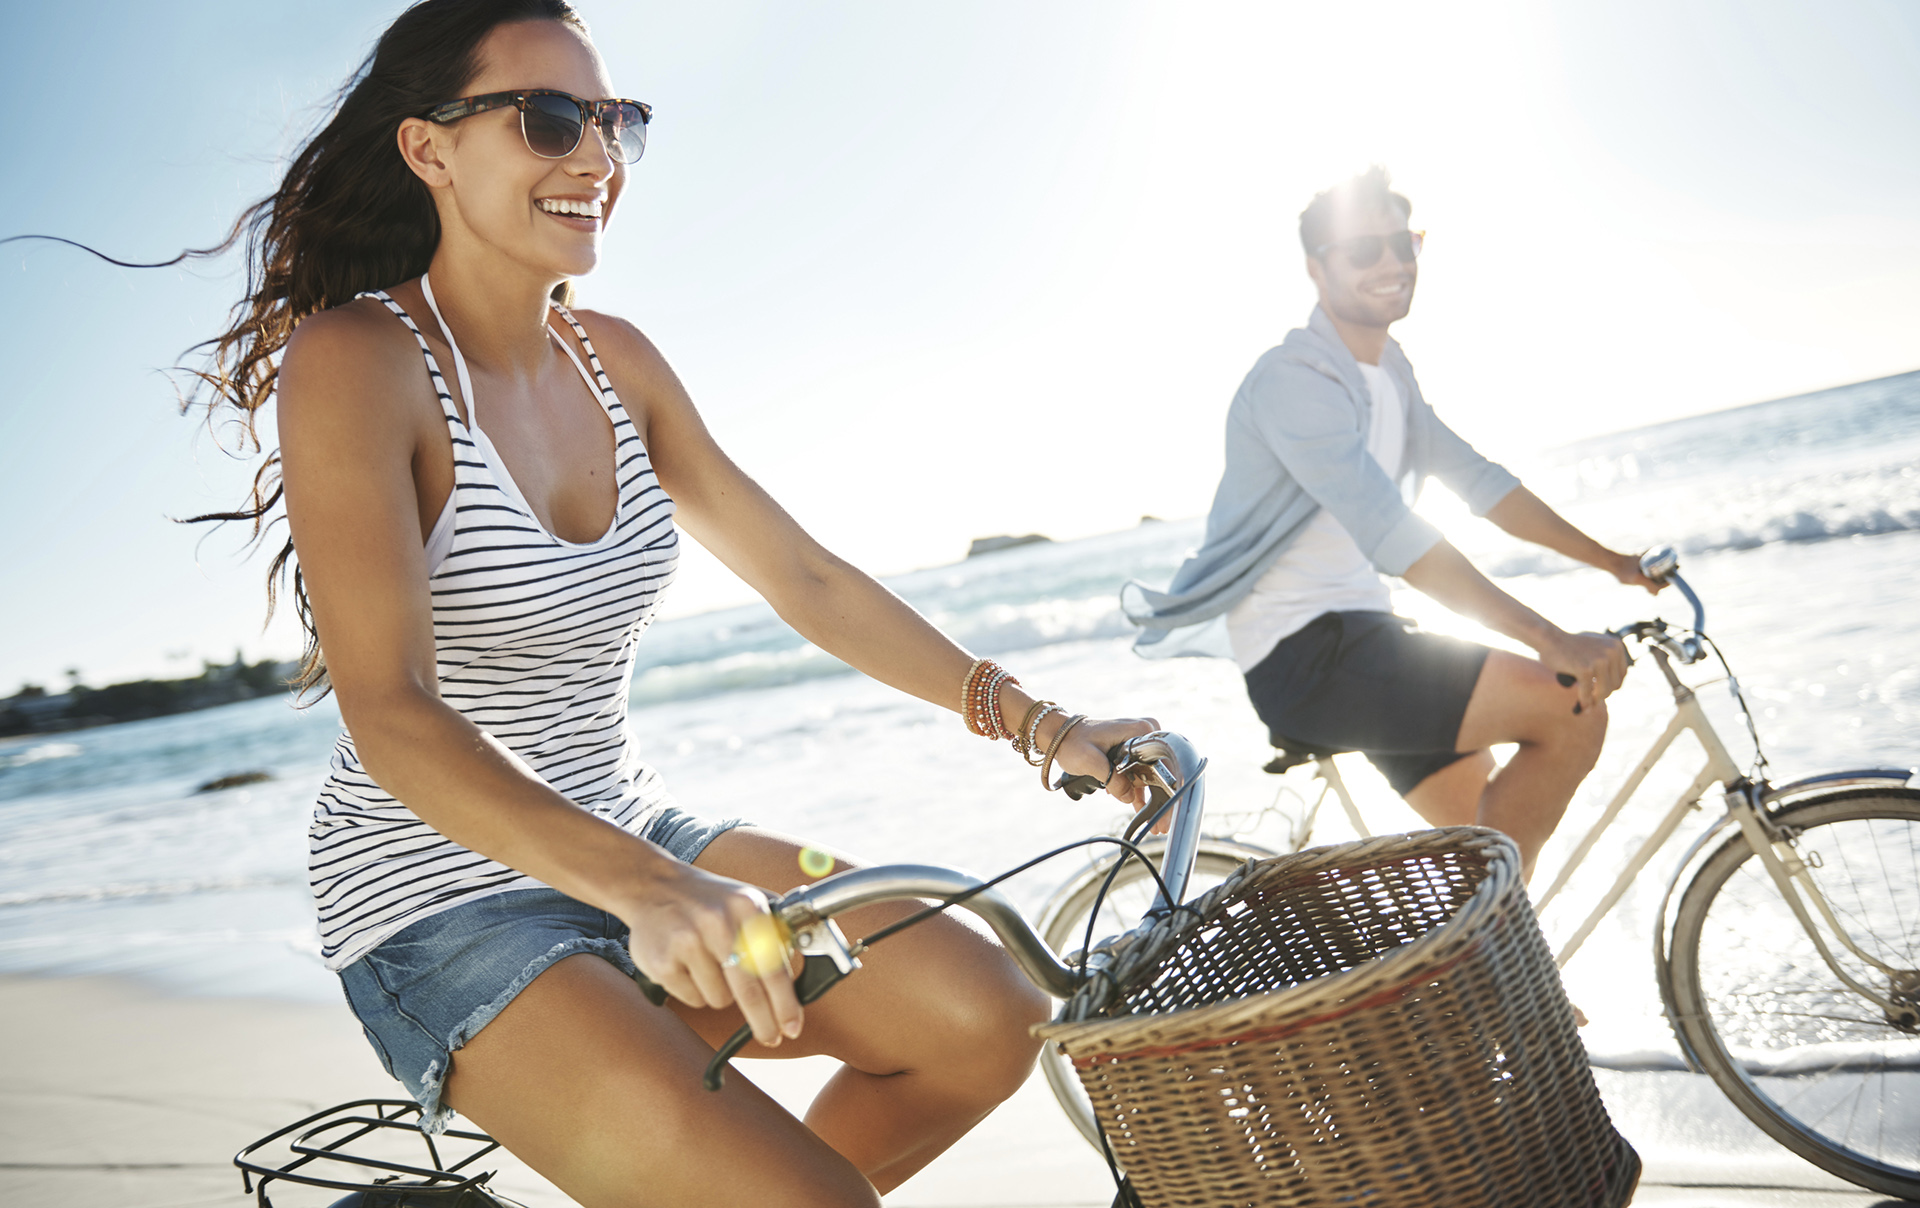 What Can You Do About Sun Damage?